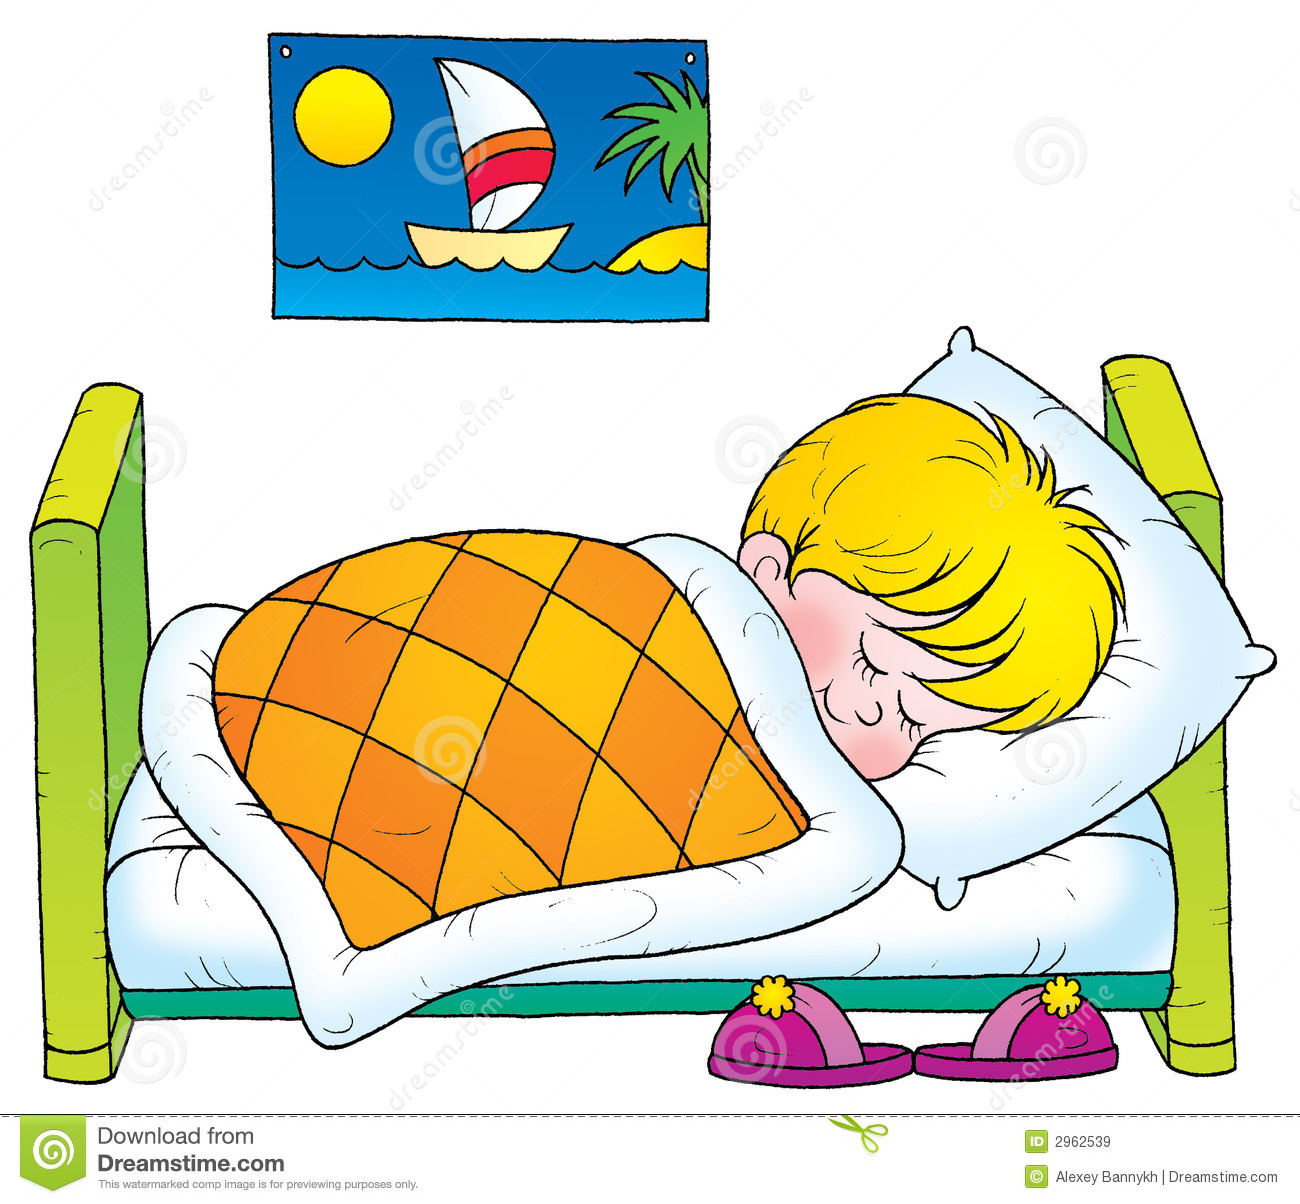 Clipart bed early.  collection of child